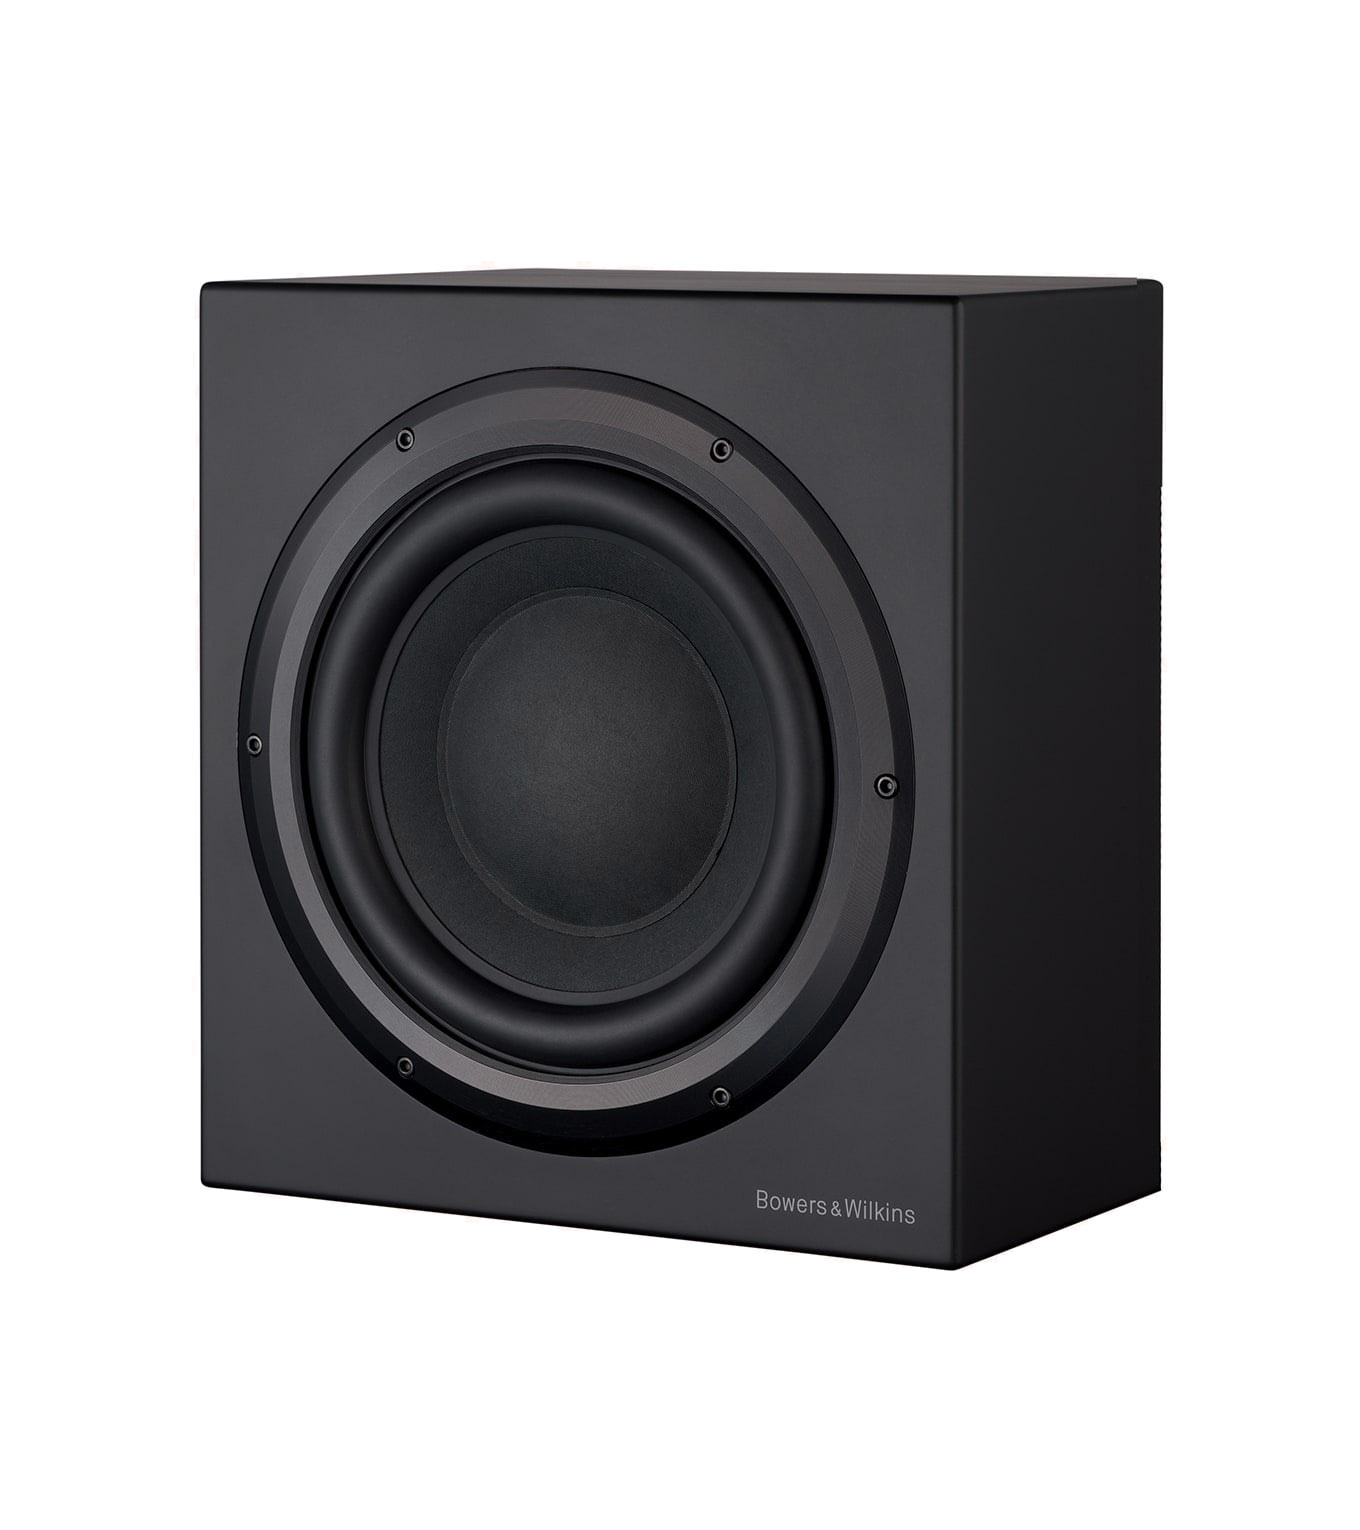 Bowers & Wilkins CTSW15 Subwoofer